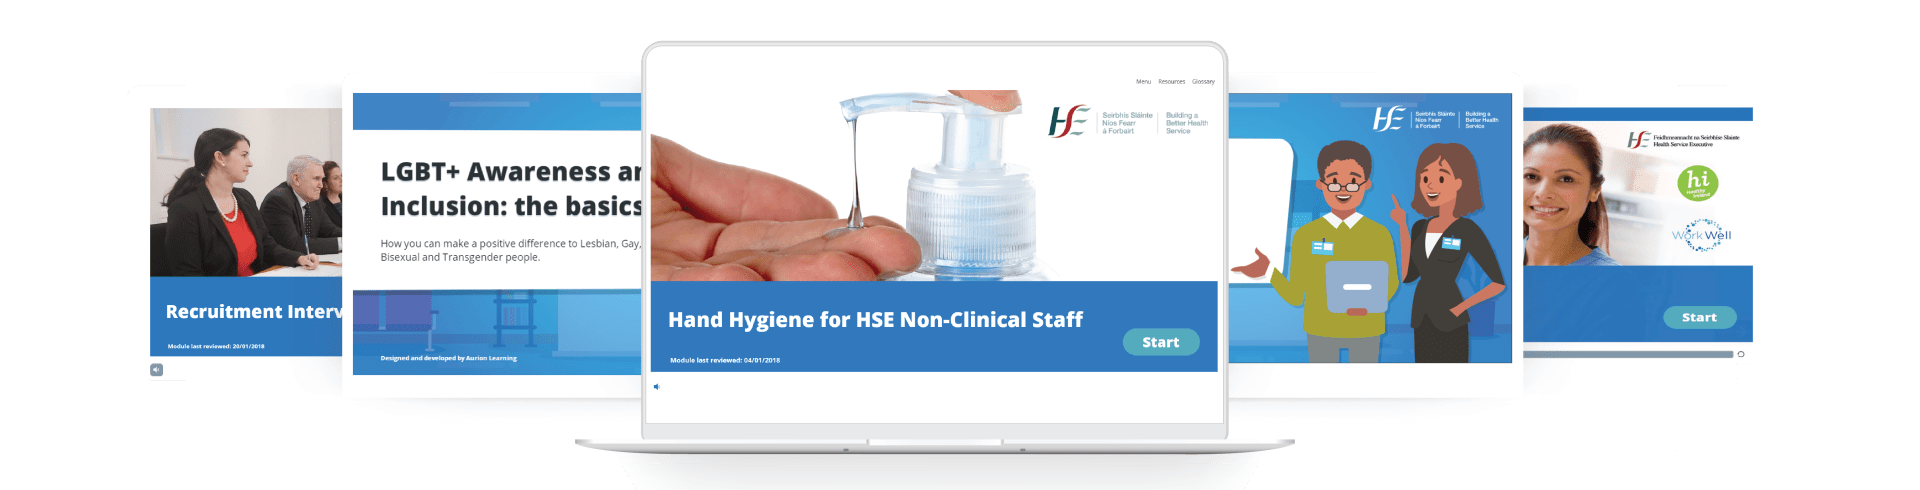 HSELanD eLearning courses on laptop screens including hand hygiene, LGBT+ awareness, recruitment and diversity modules.png